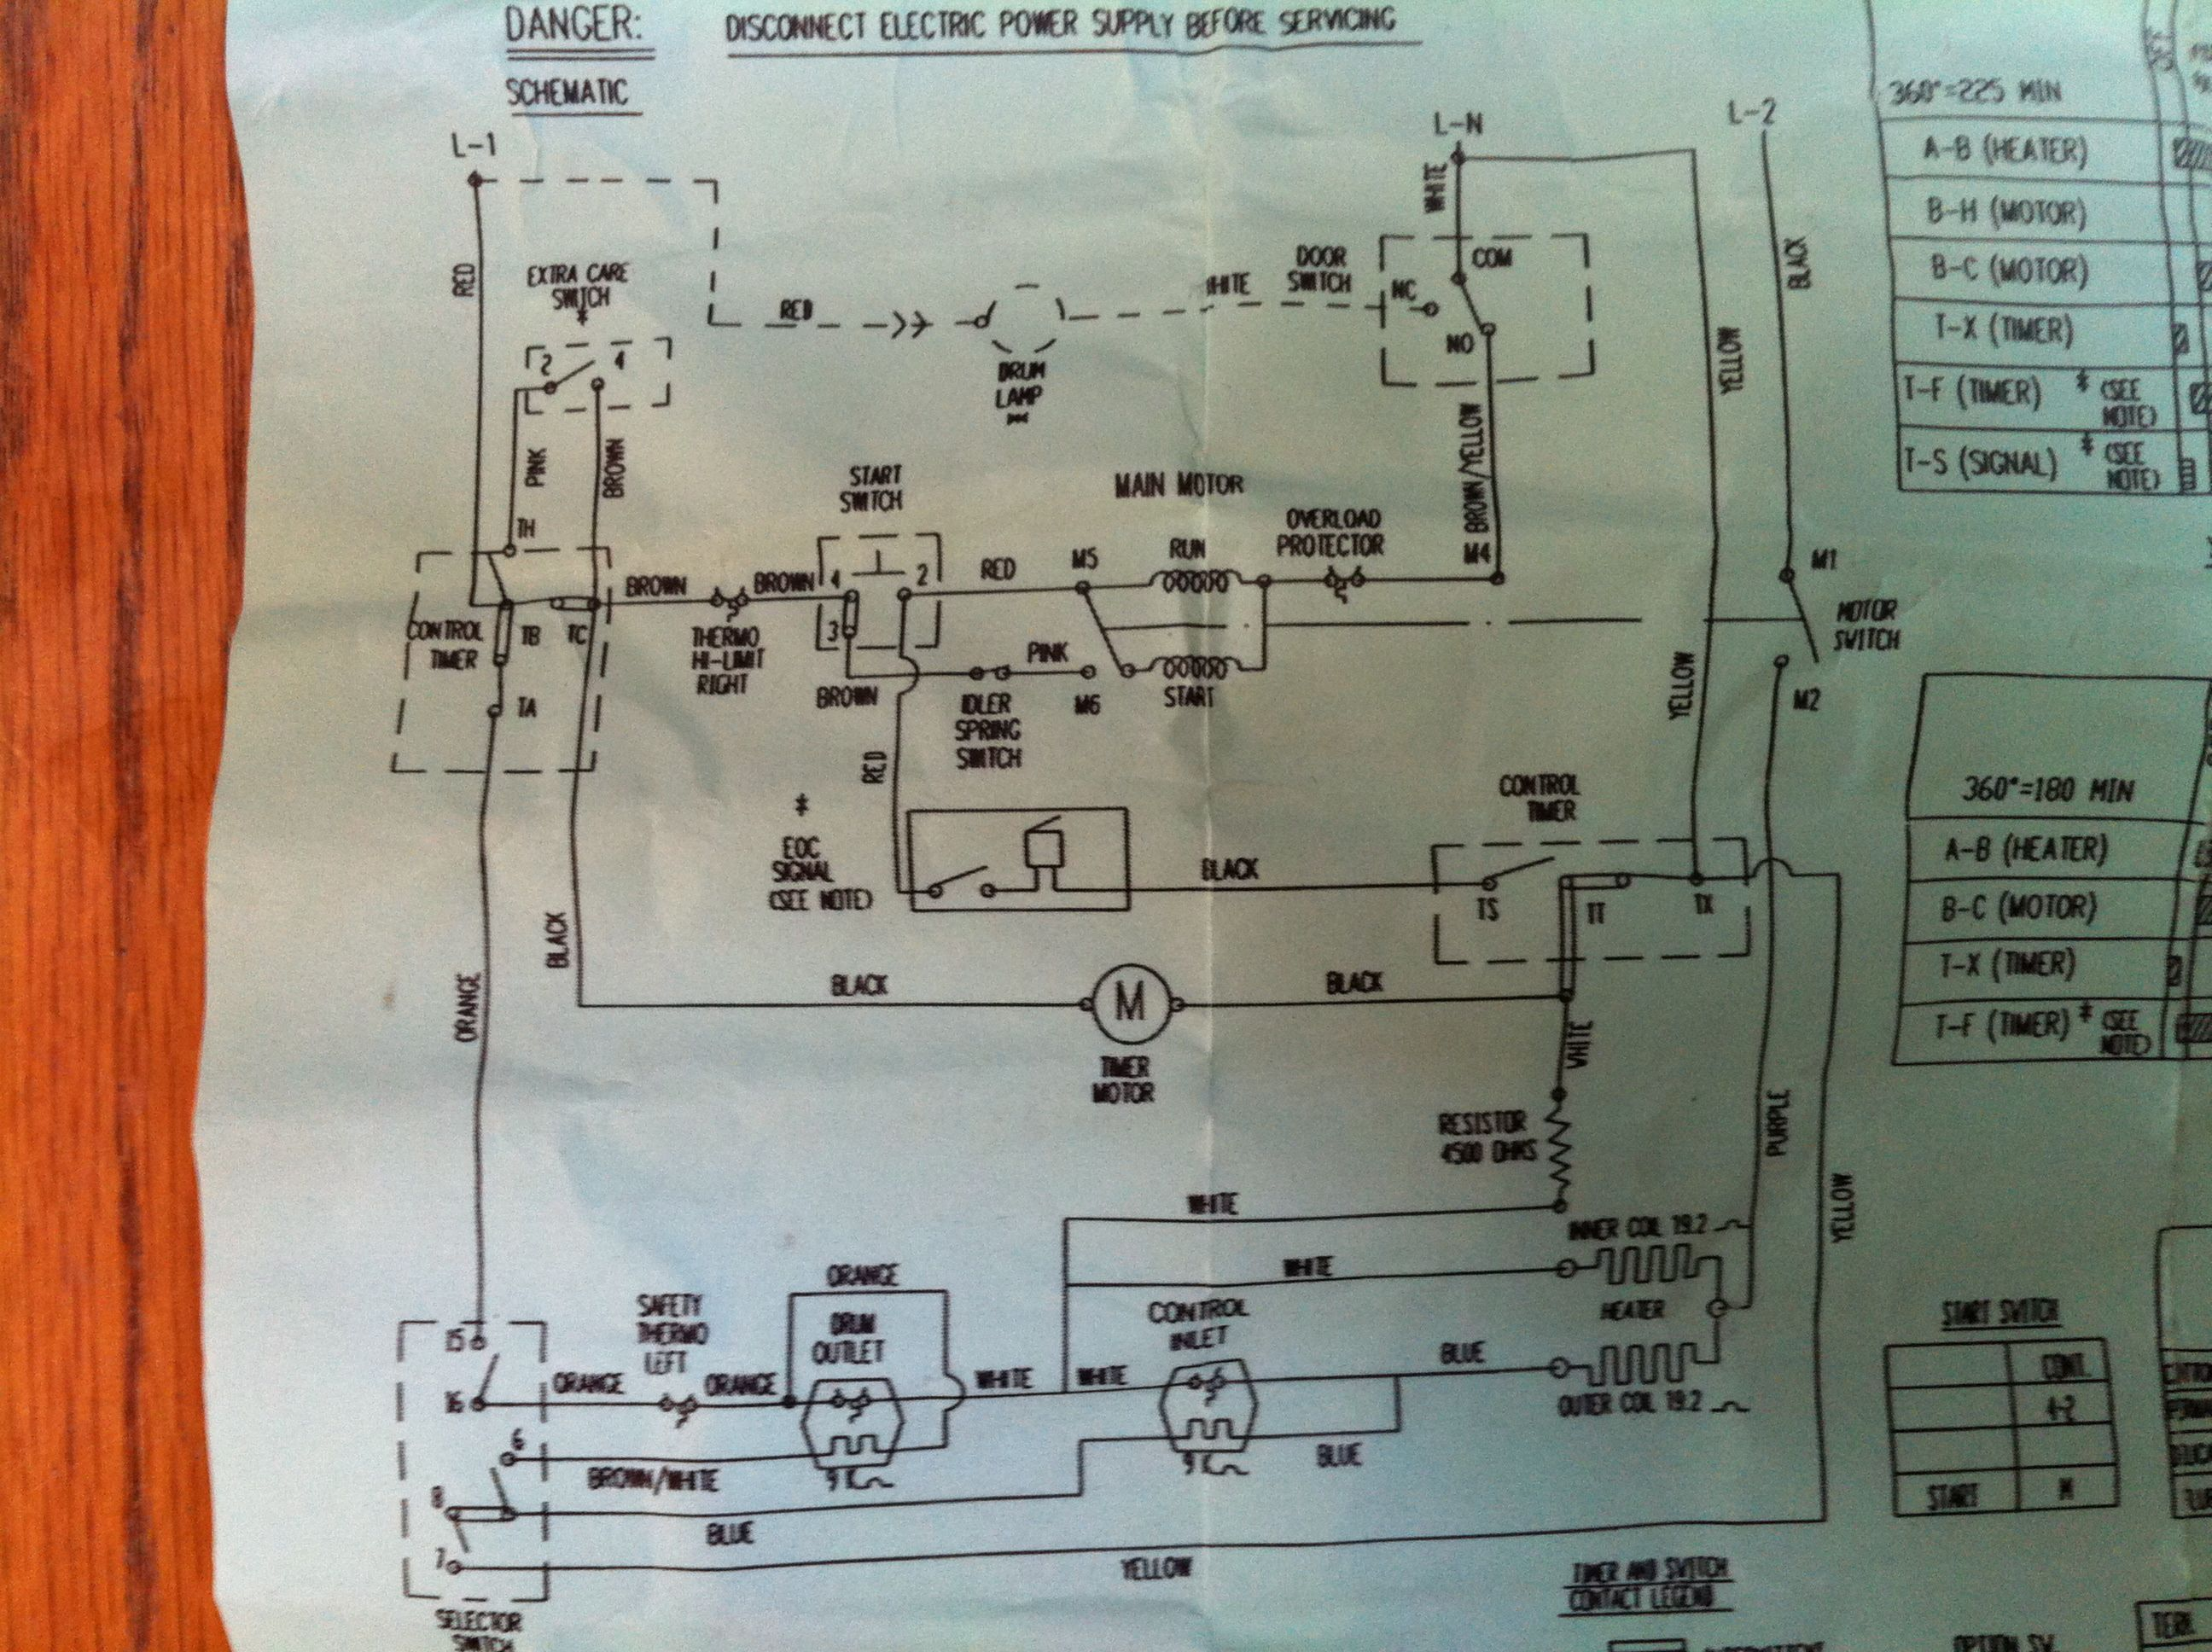 Wiring Diagram Diagram And Parts List For Kenmore Washerparts Model